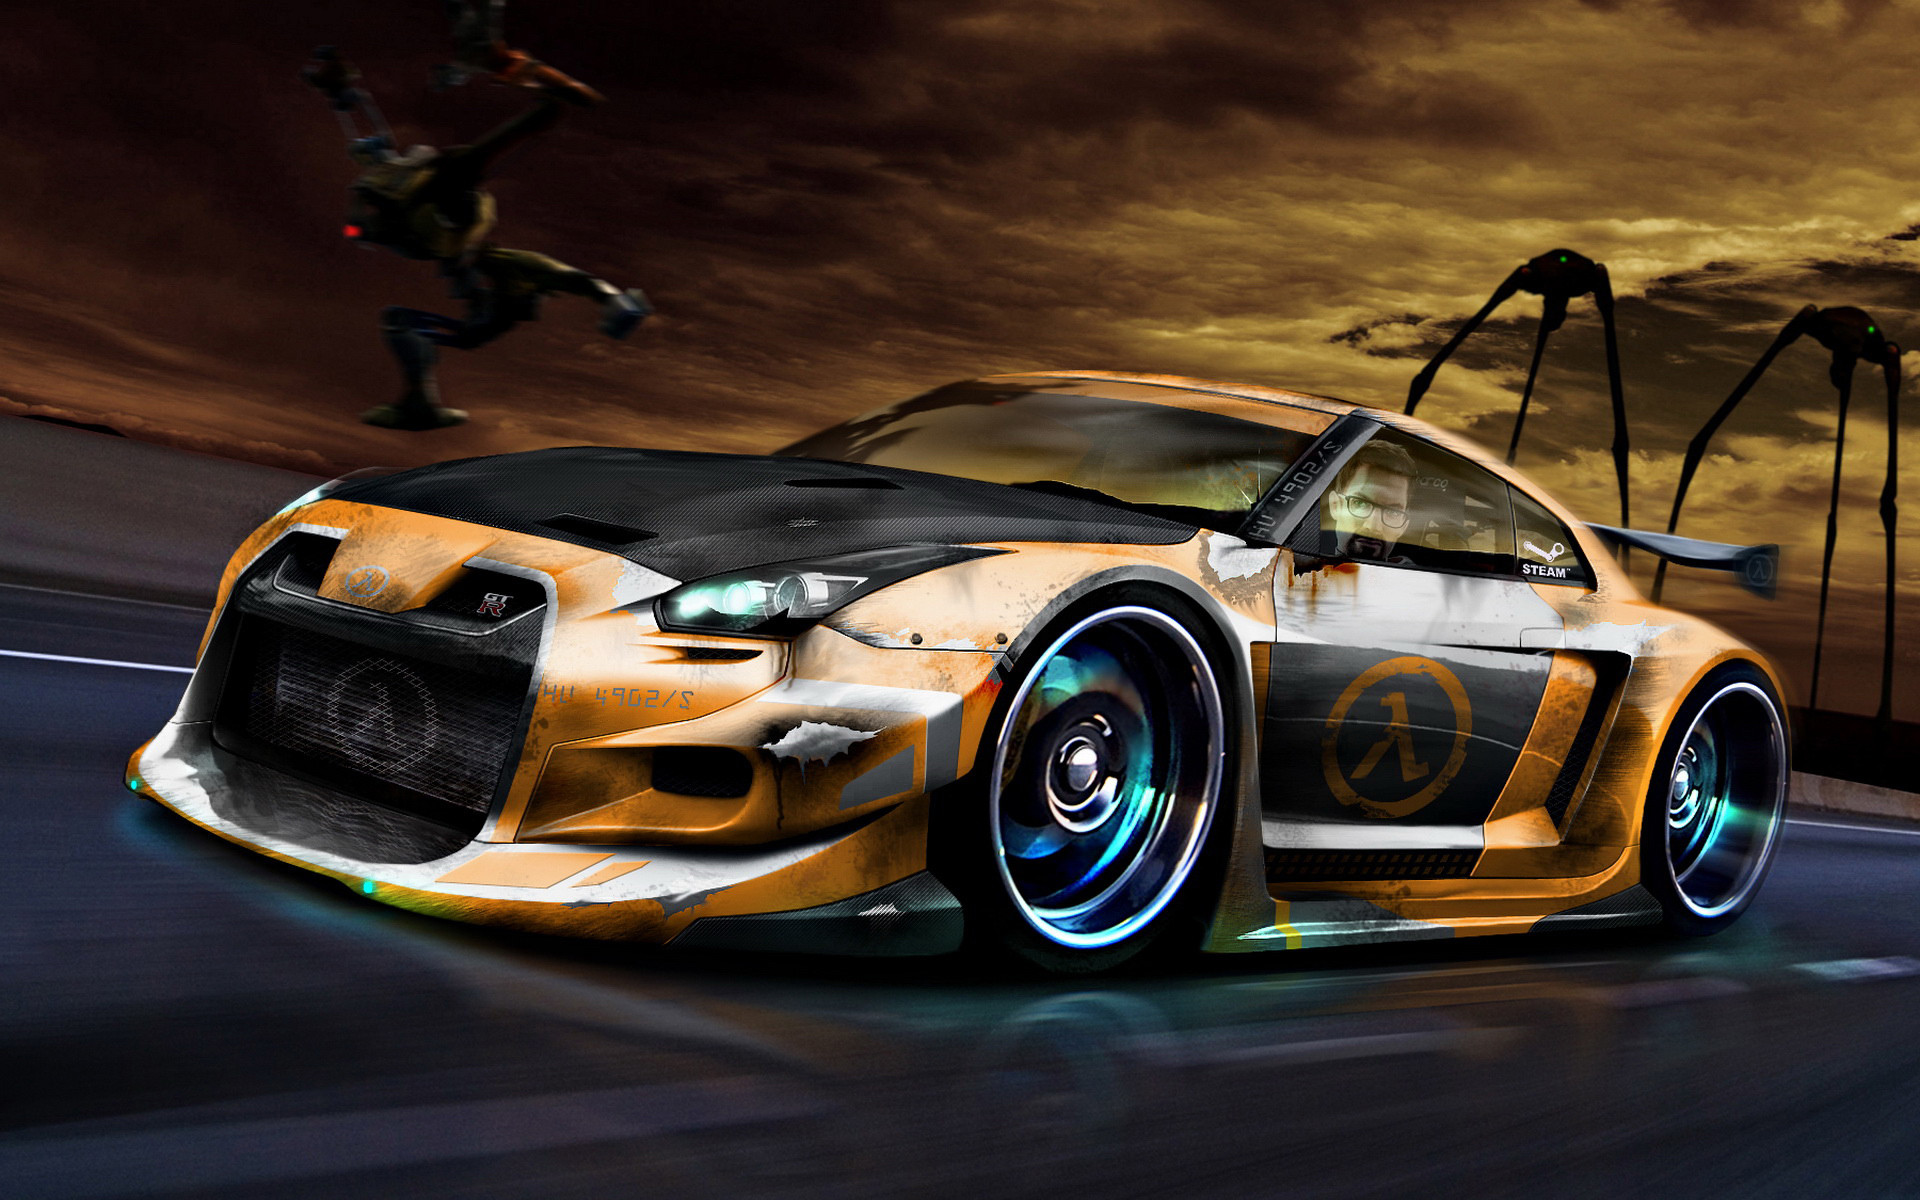 1920x1080 HD Sports Cars Wallpapers Sport Car Wallpaper For Free Download About 3350